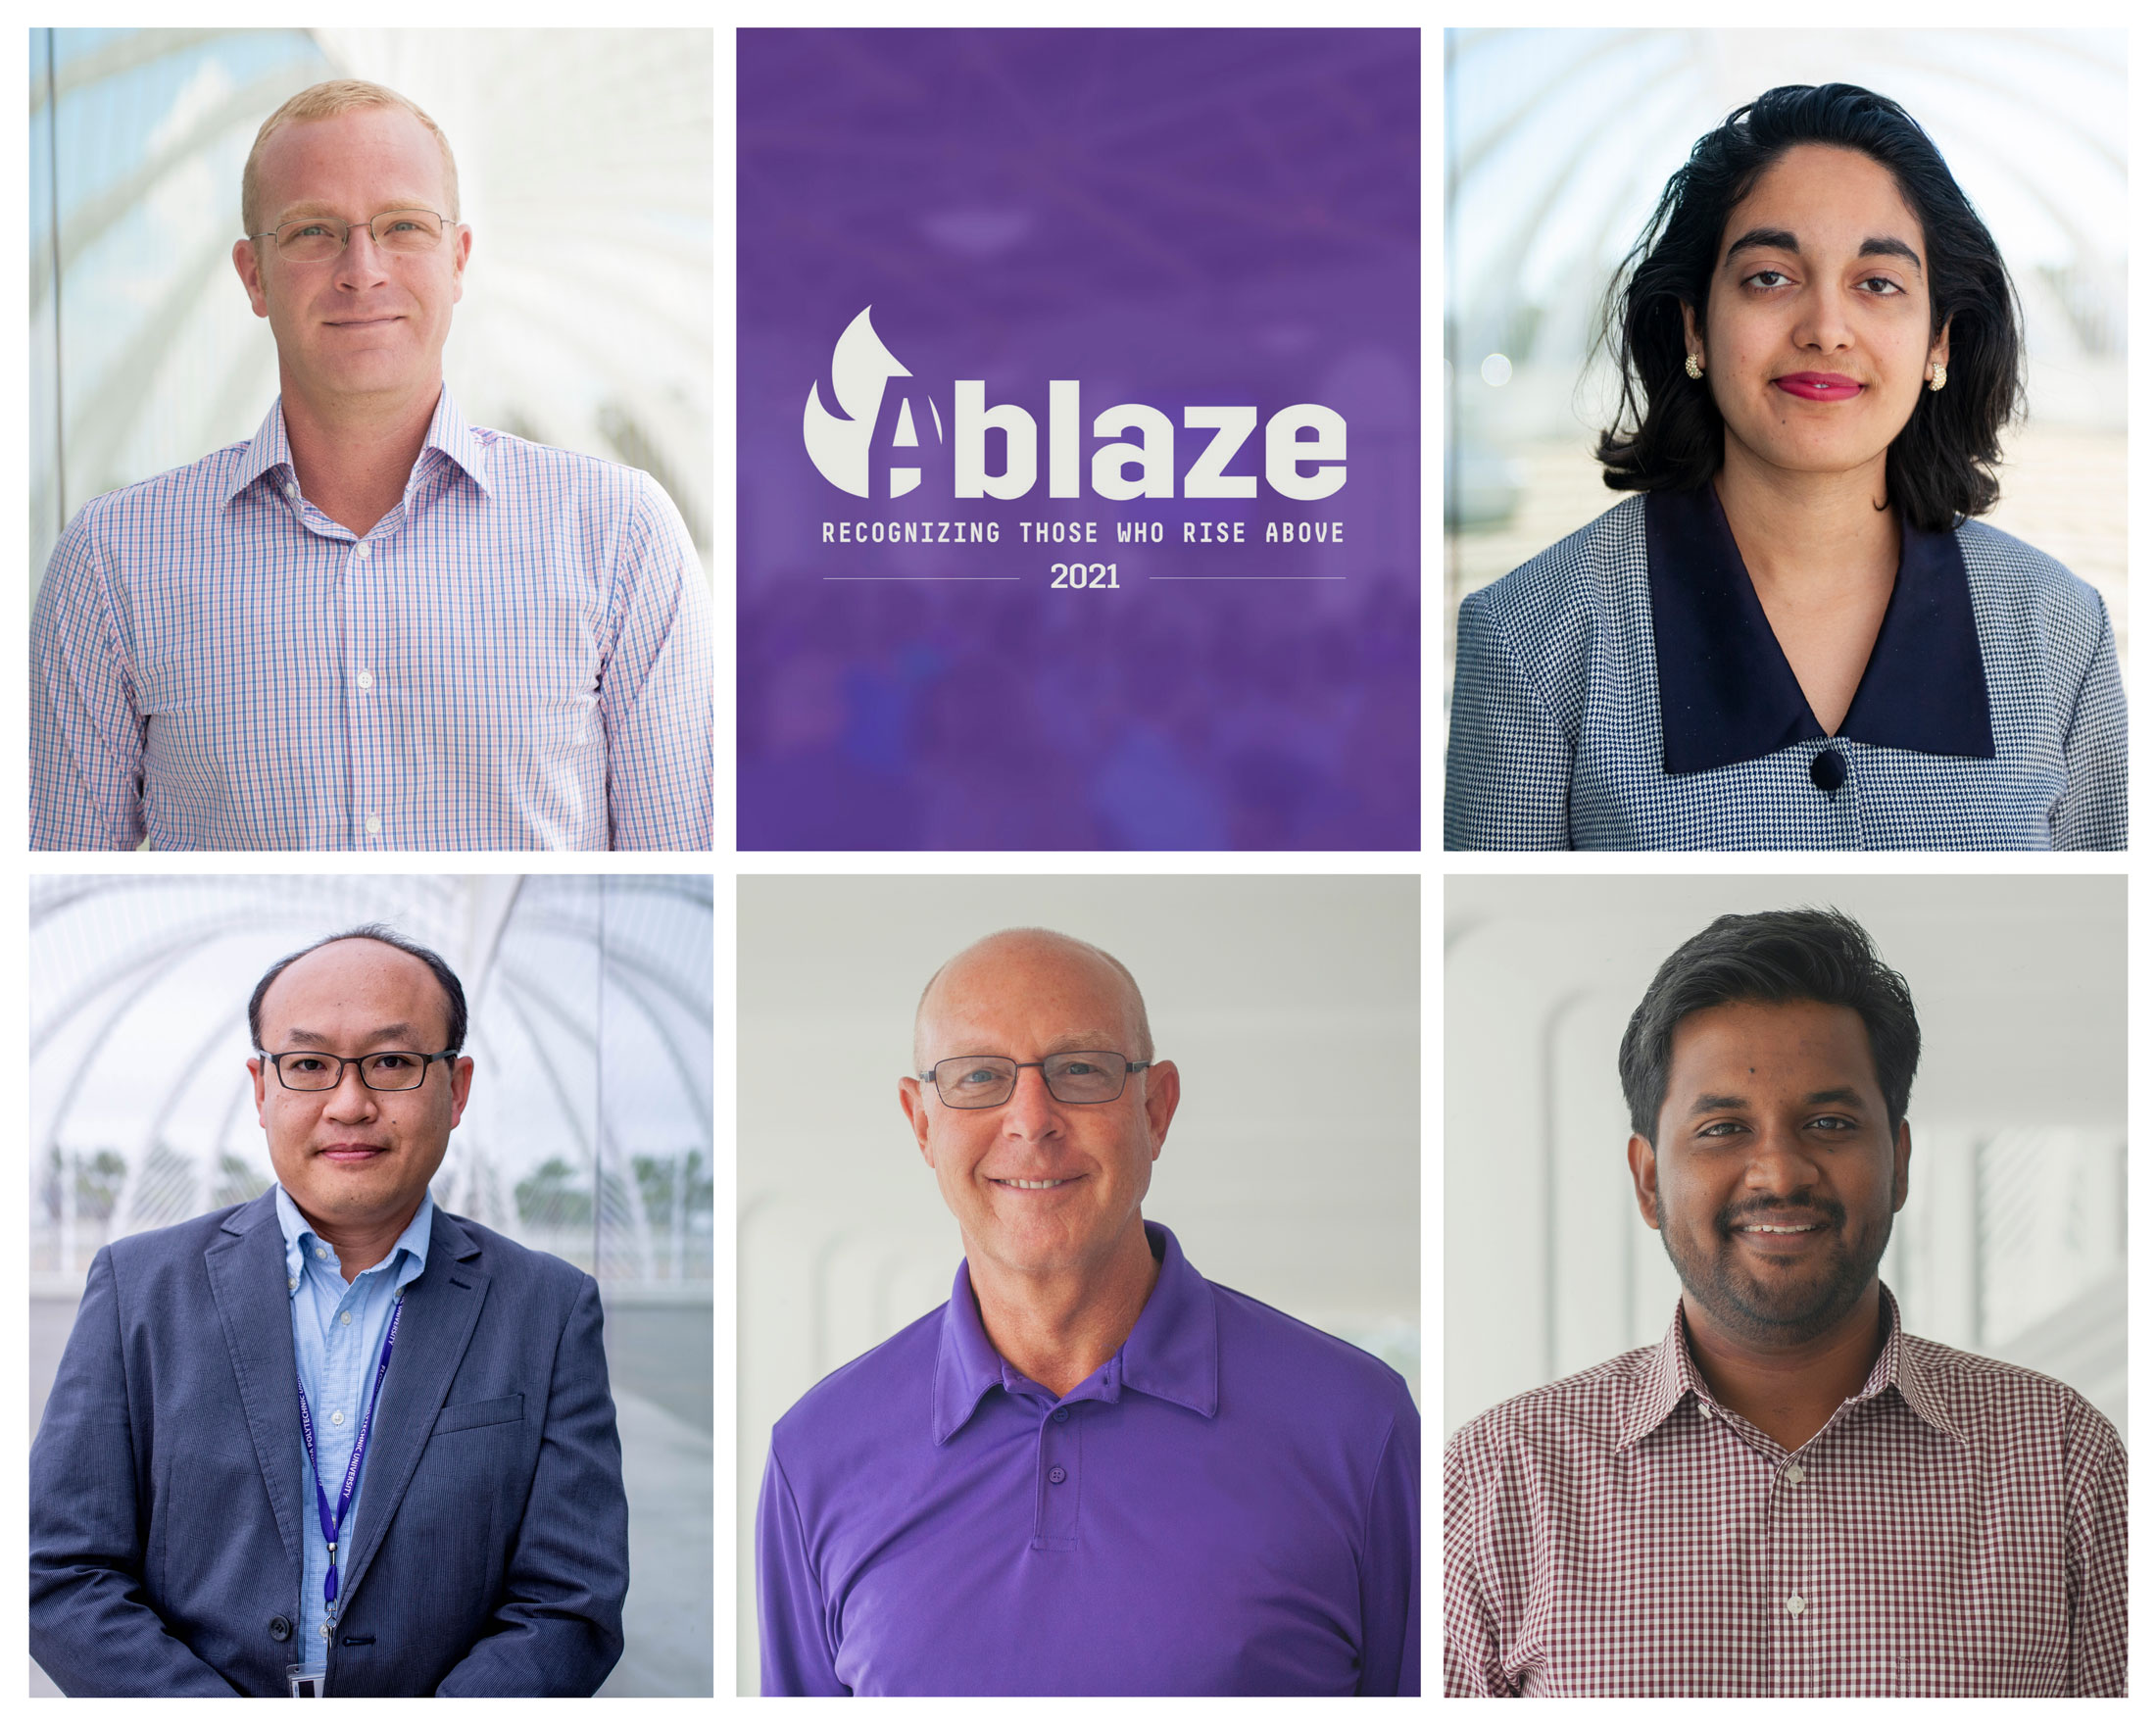 2021 Ablaze awards honor outstanding employee contributions at Florida Poly